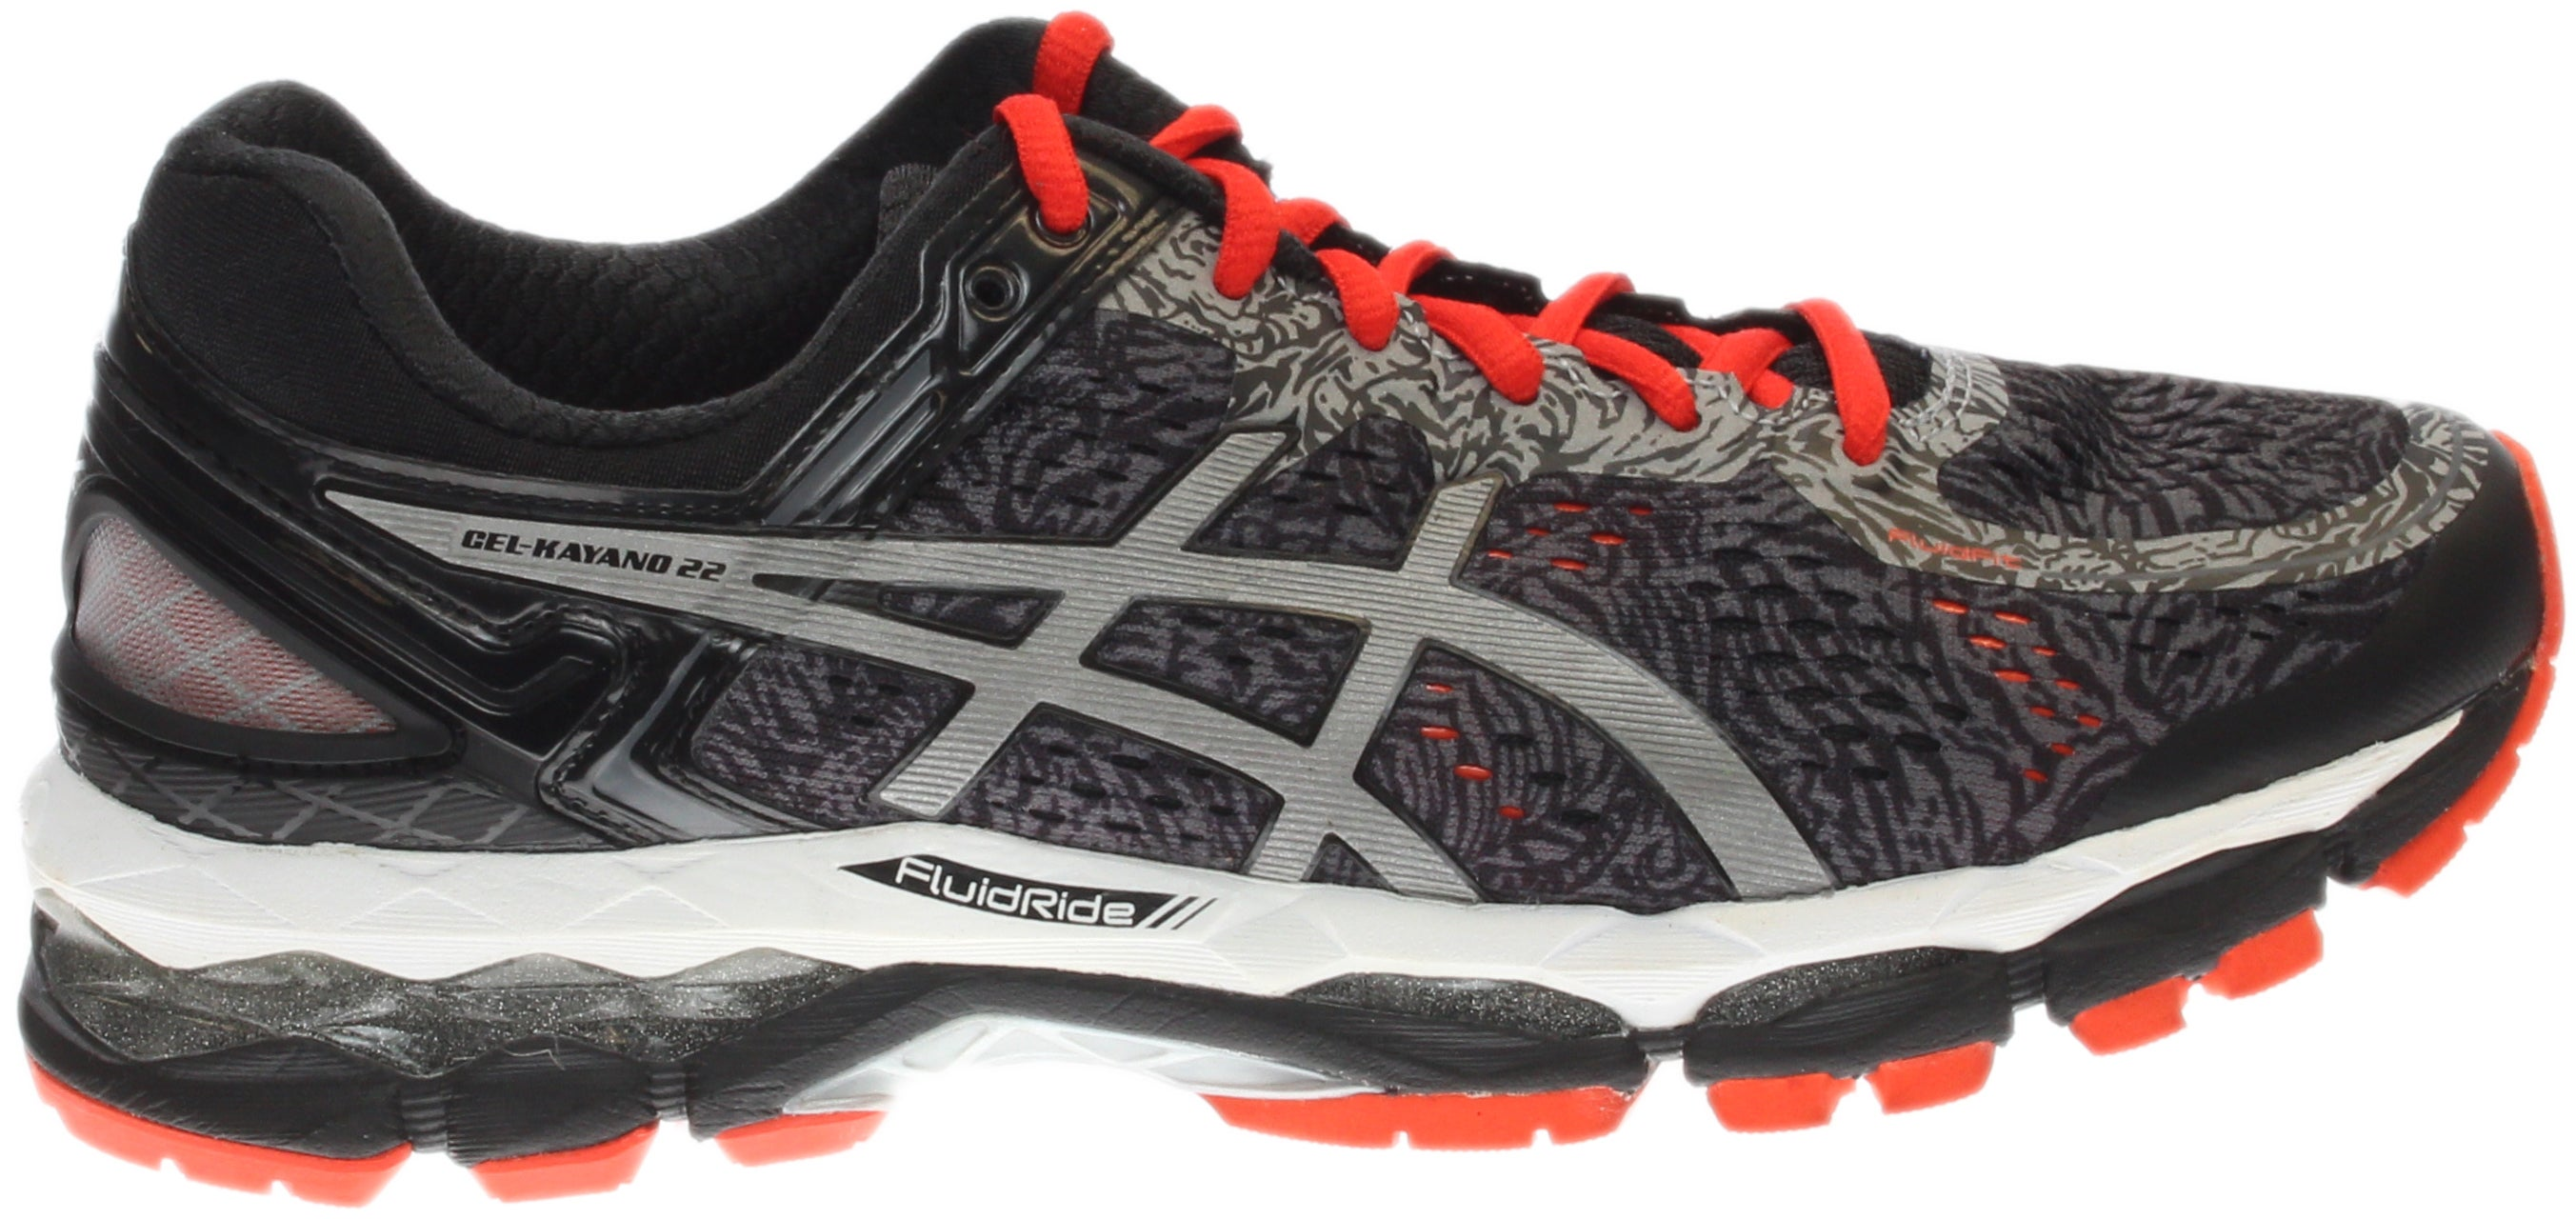 ASICS Gel - Kayano 22 Lite-Show Grey - Mens  - Size 7.5